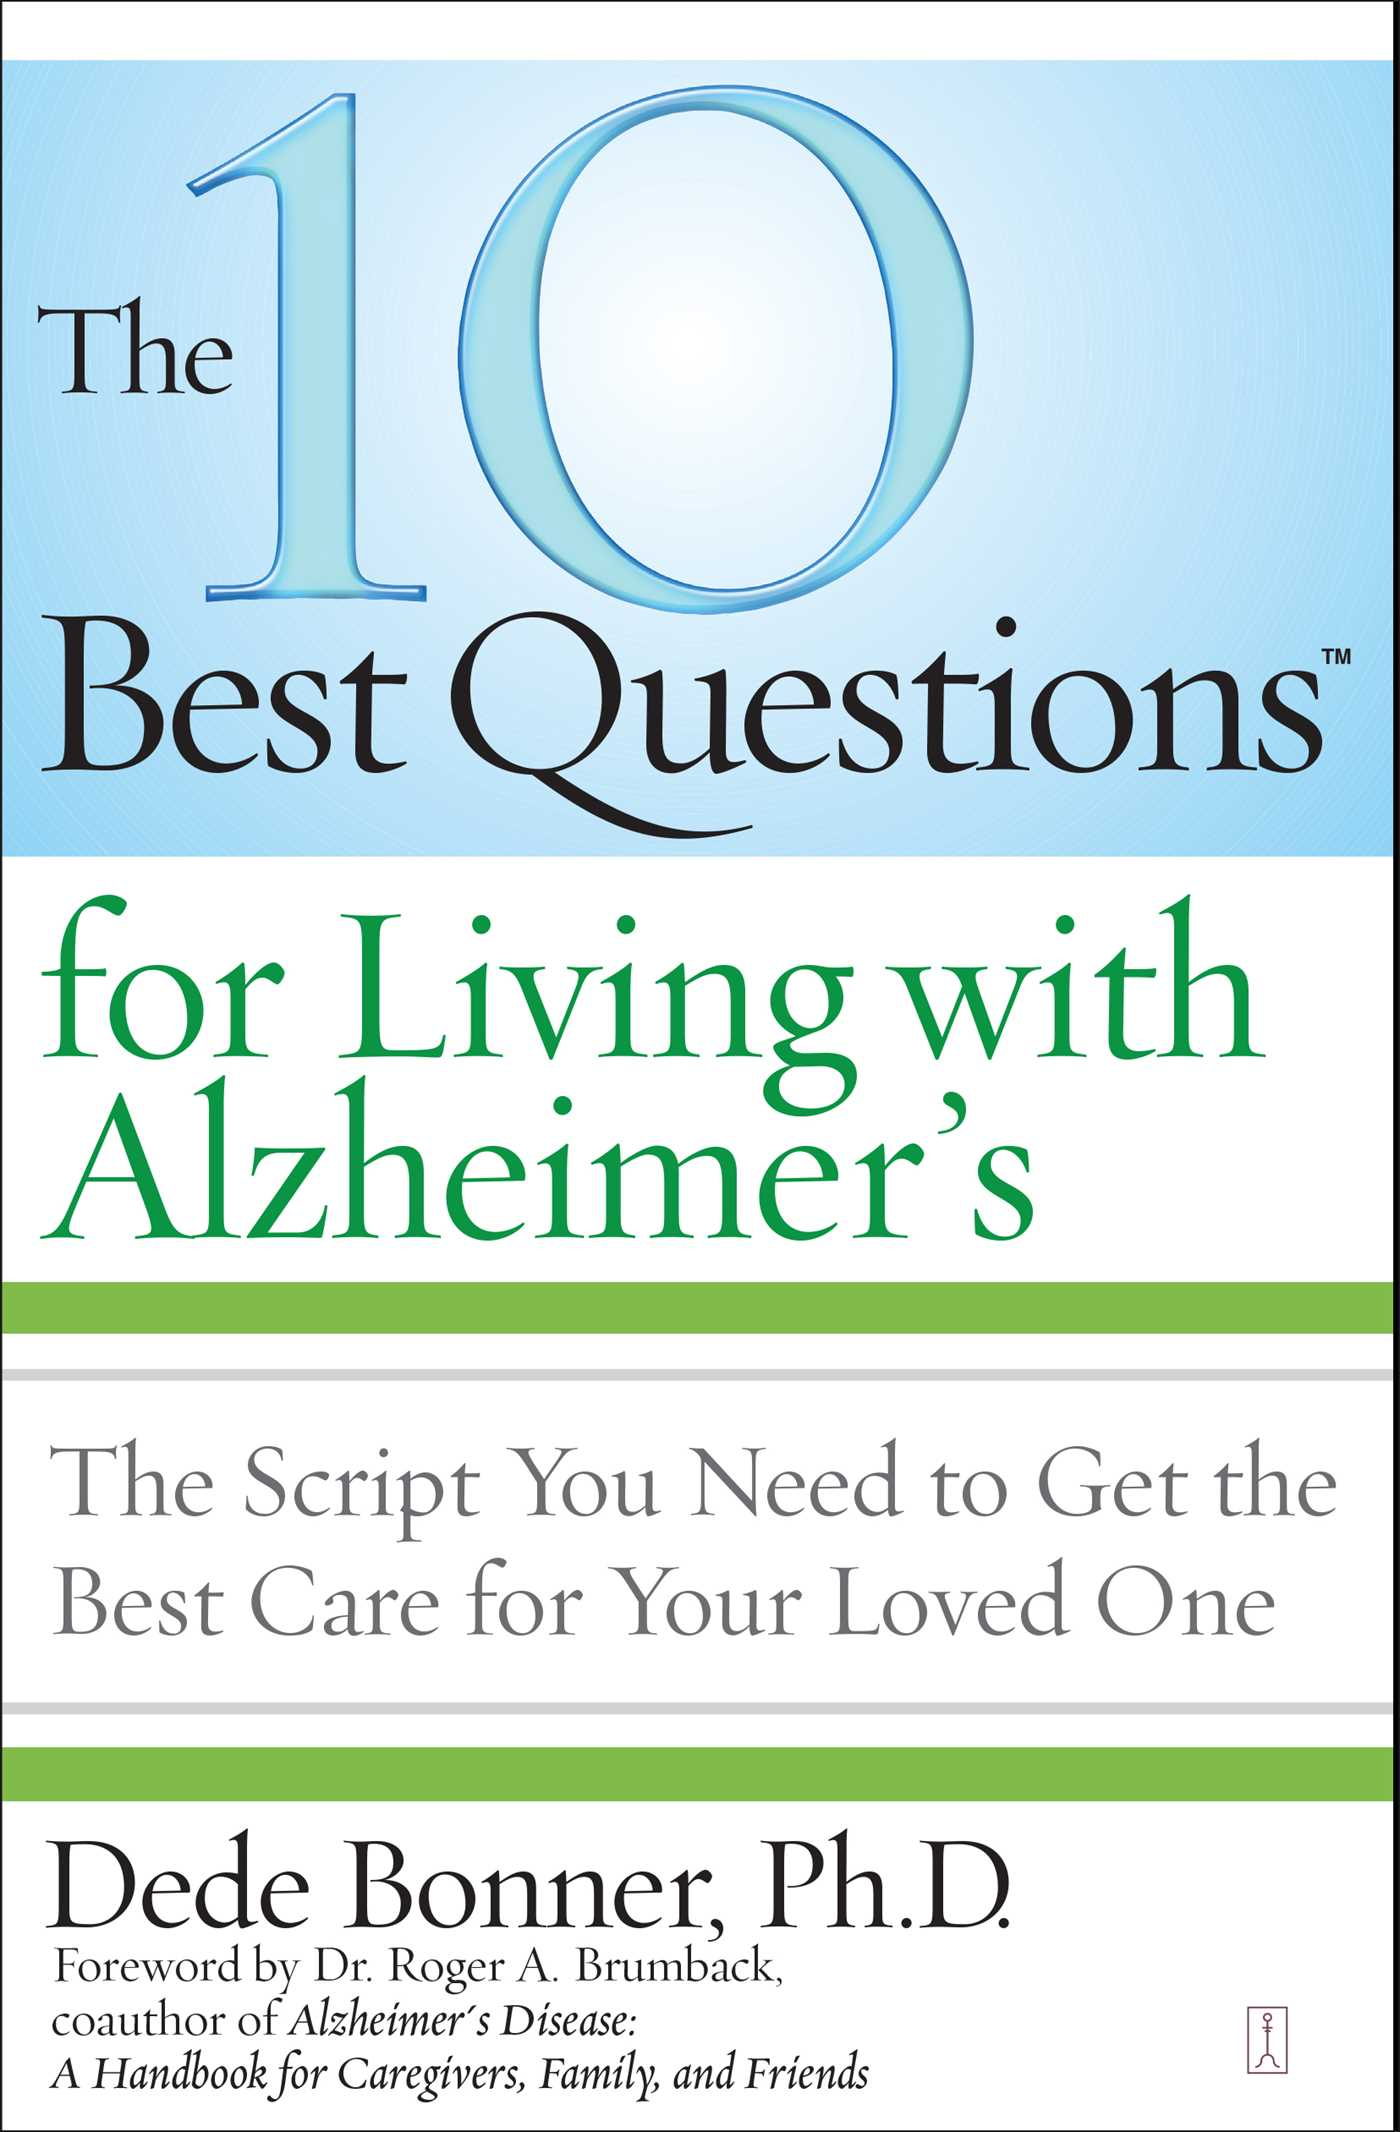 The 10 best questions for living with alzheimers 9781416560852 hr